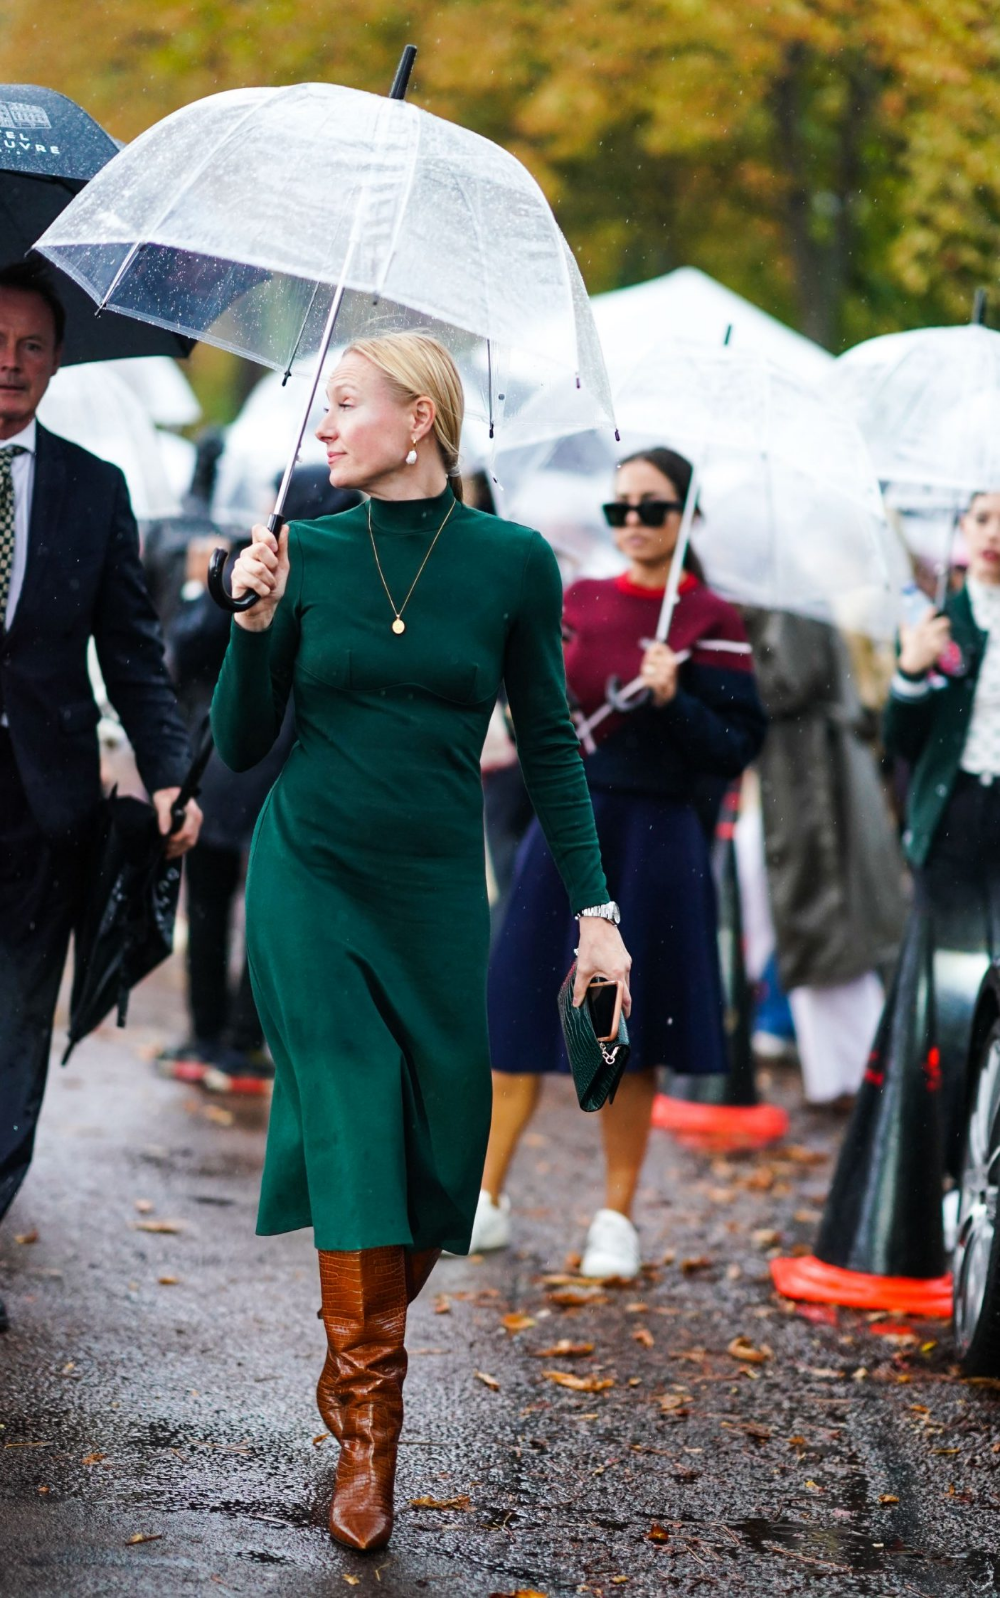 Rainy day style: the perfect wet weather outfits